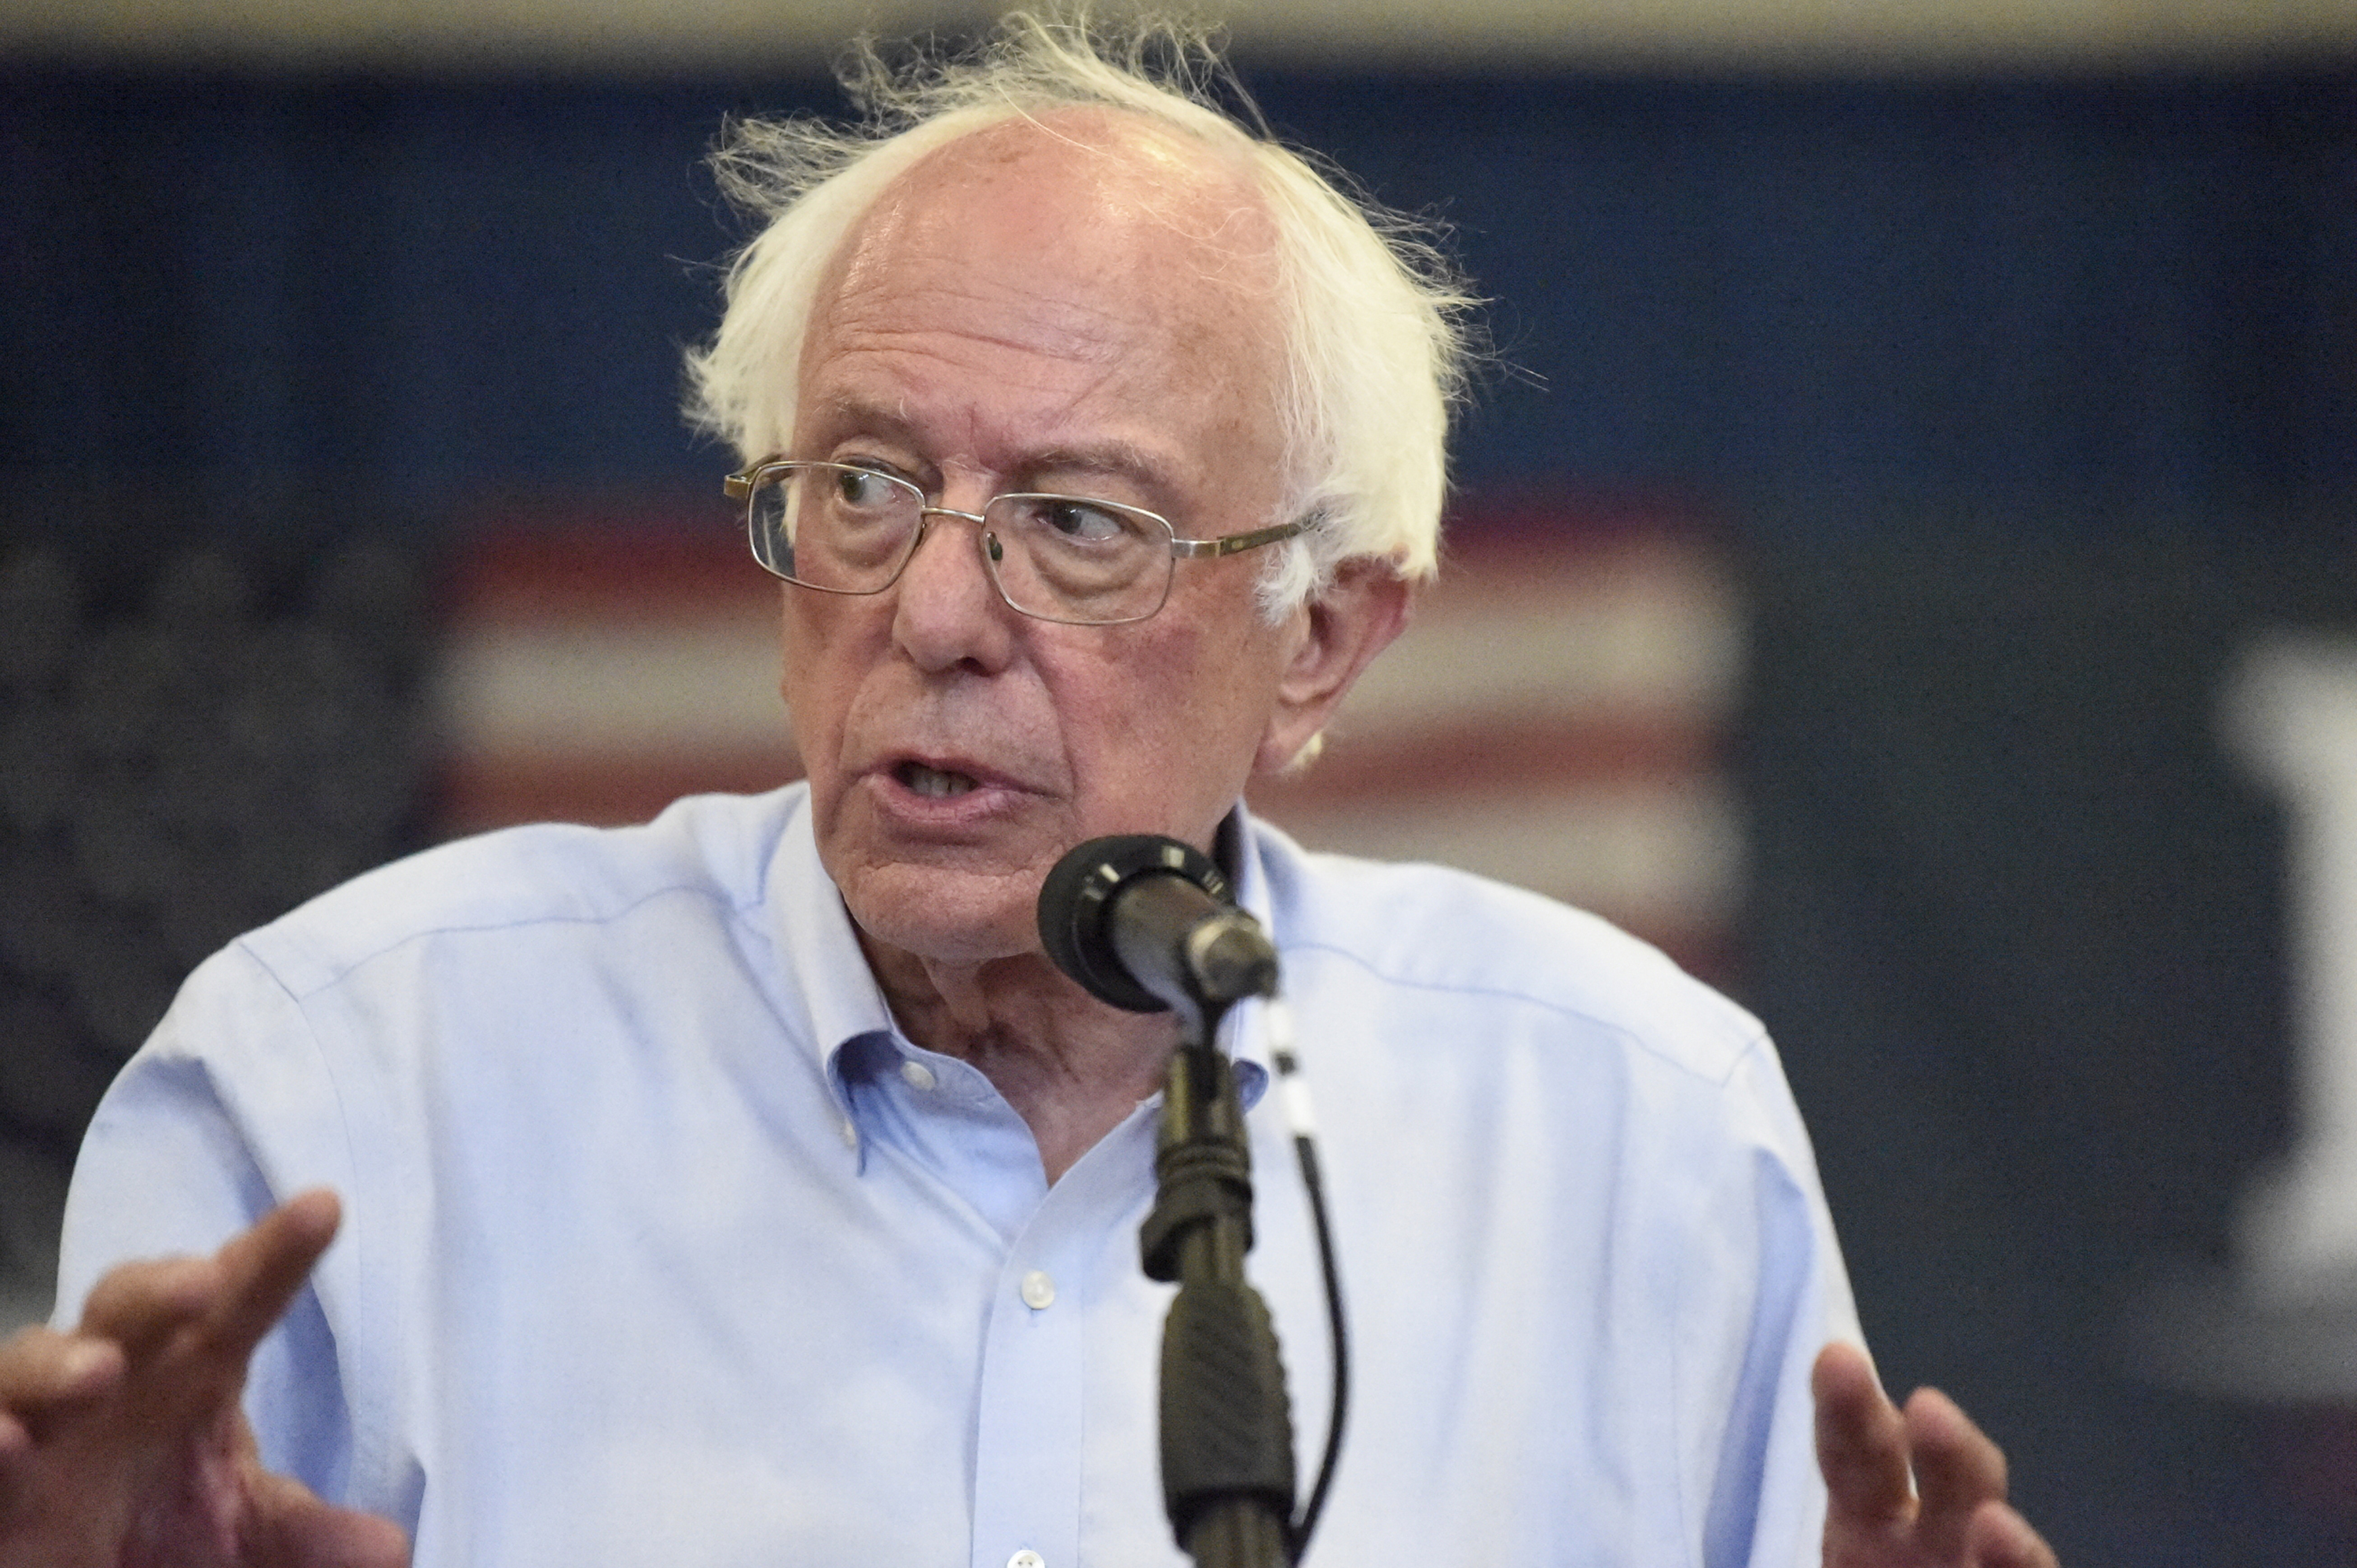 Sanders criminal justice plan aims to cut prison population